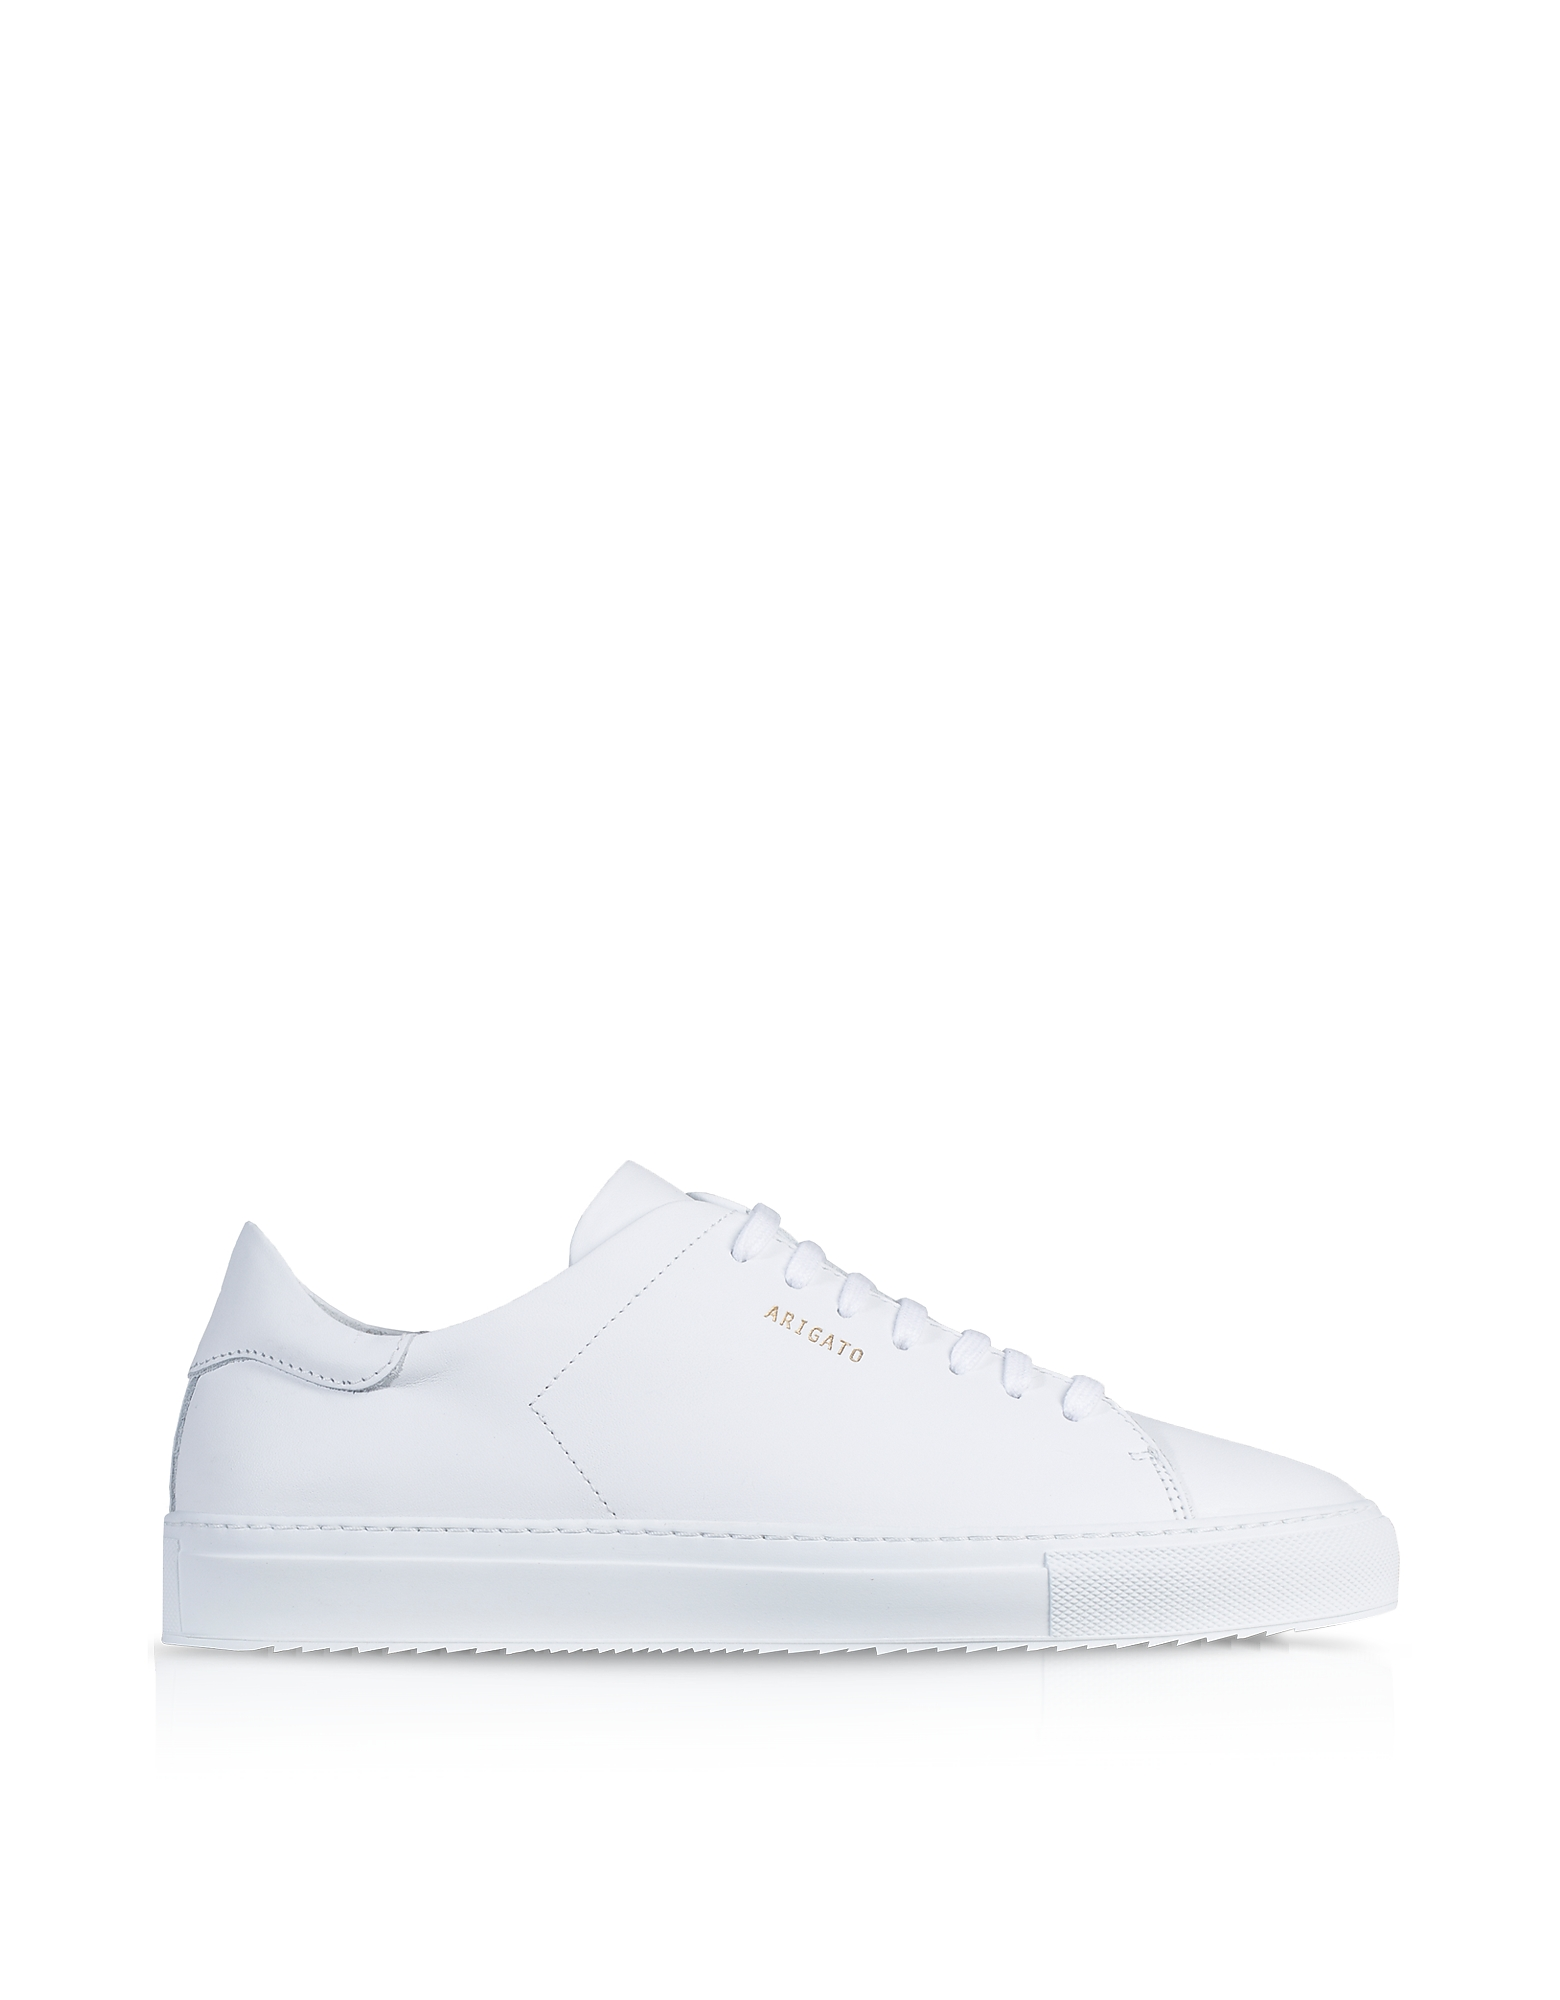 Clean 90 White Leather Men's Sneakers